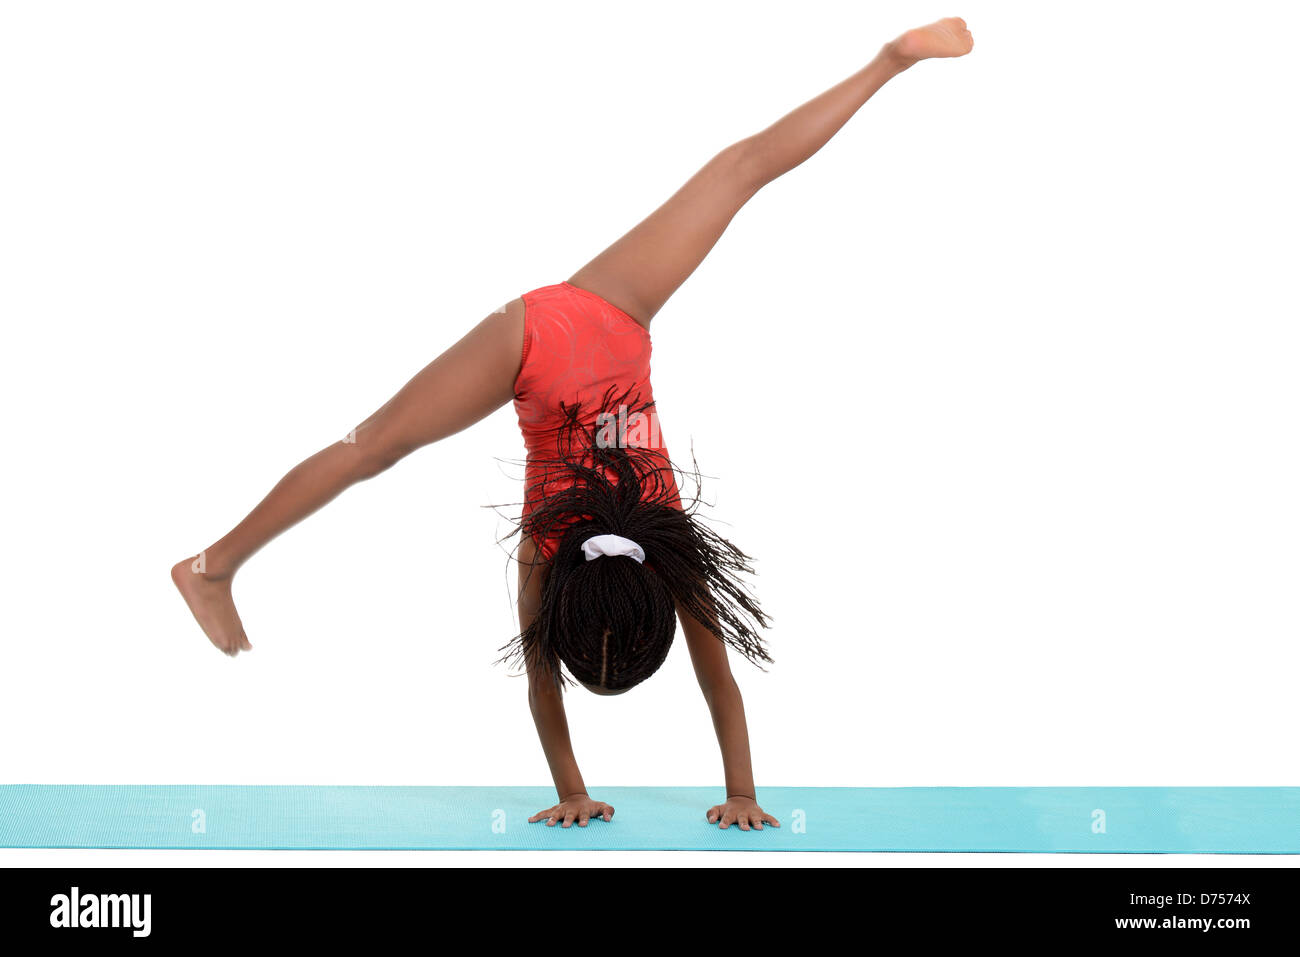 Young black girl doing gymnastics cartwheel motion blur - Stock Image